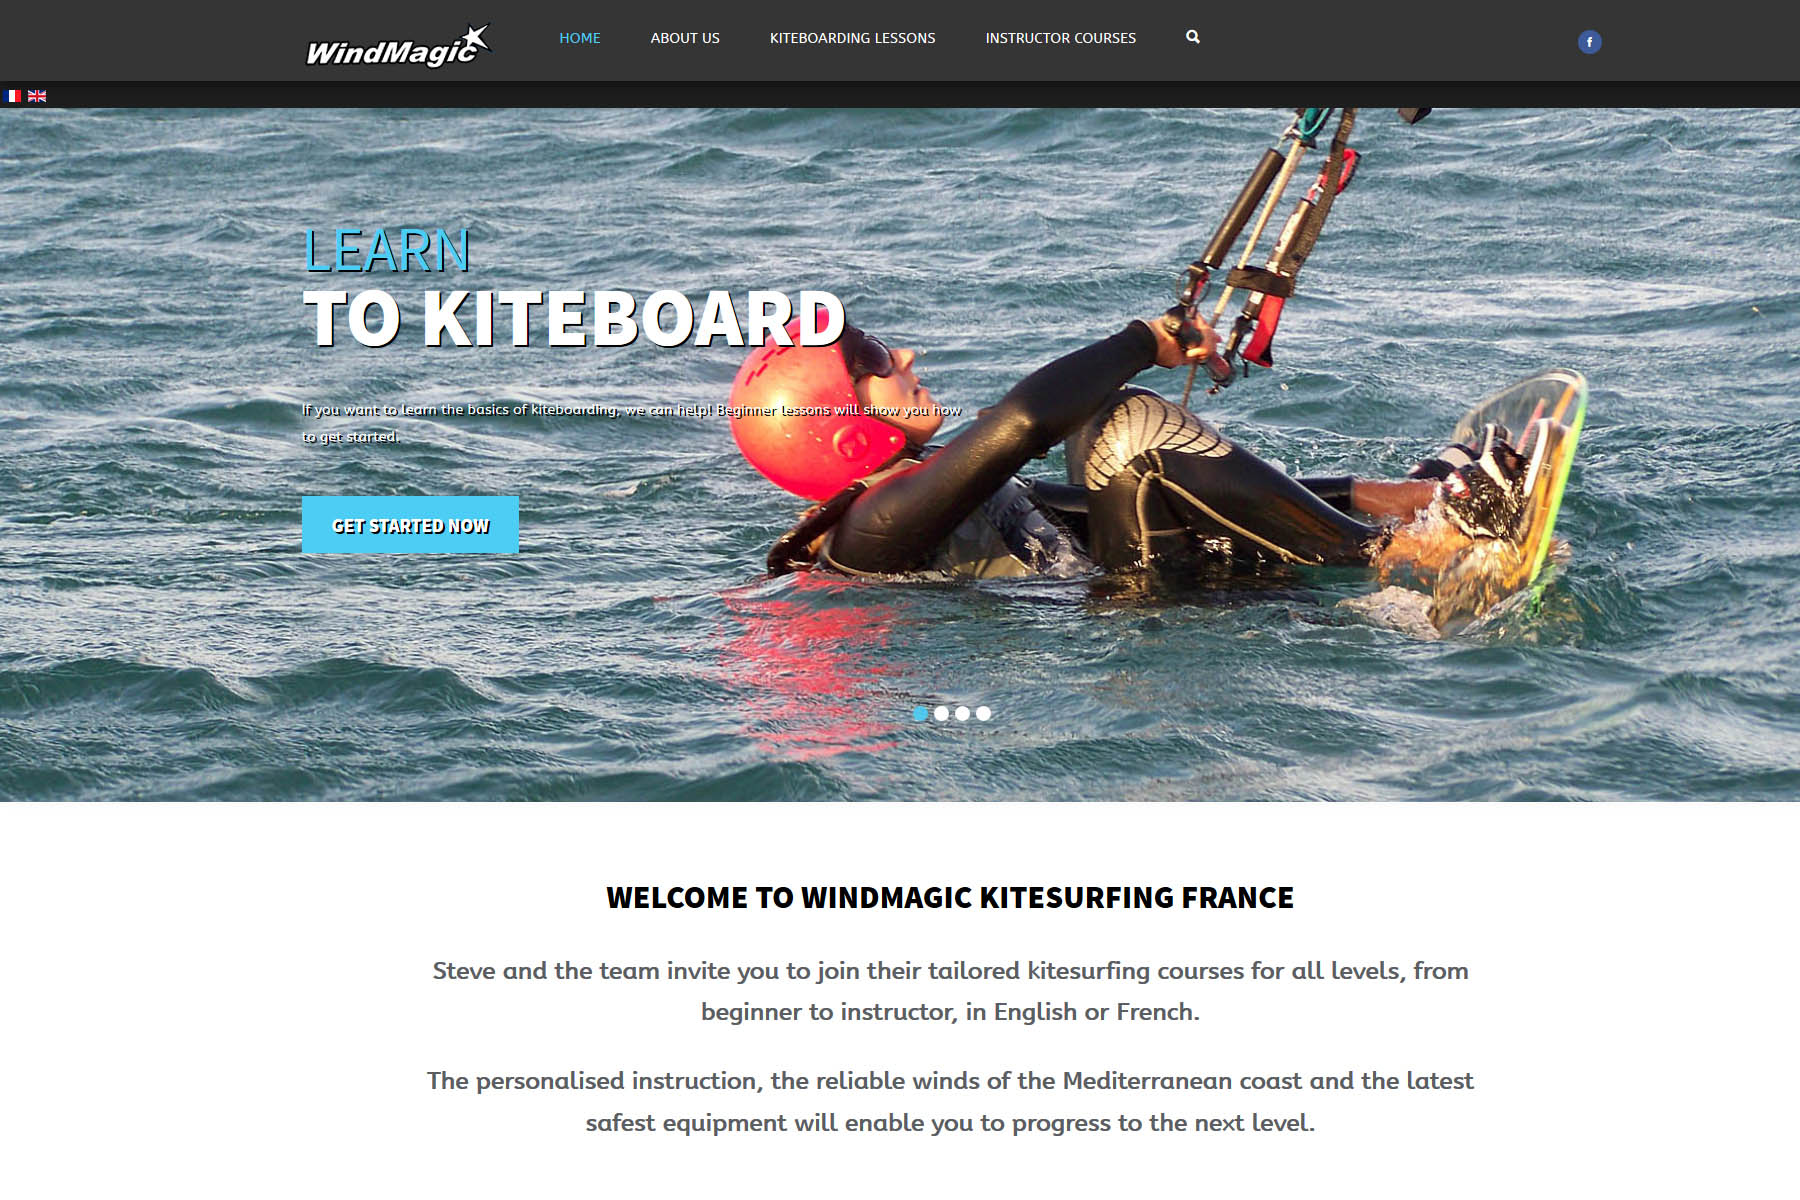 Windmagic Kitesurfing France